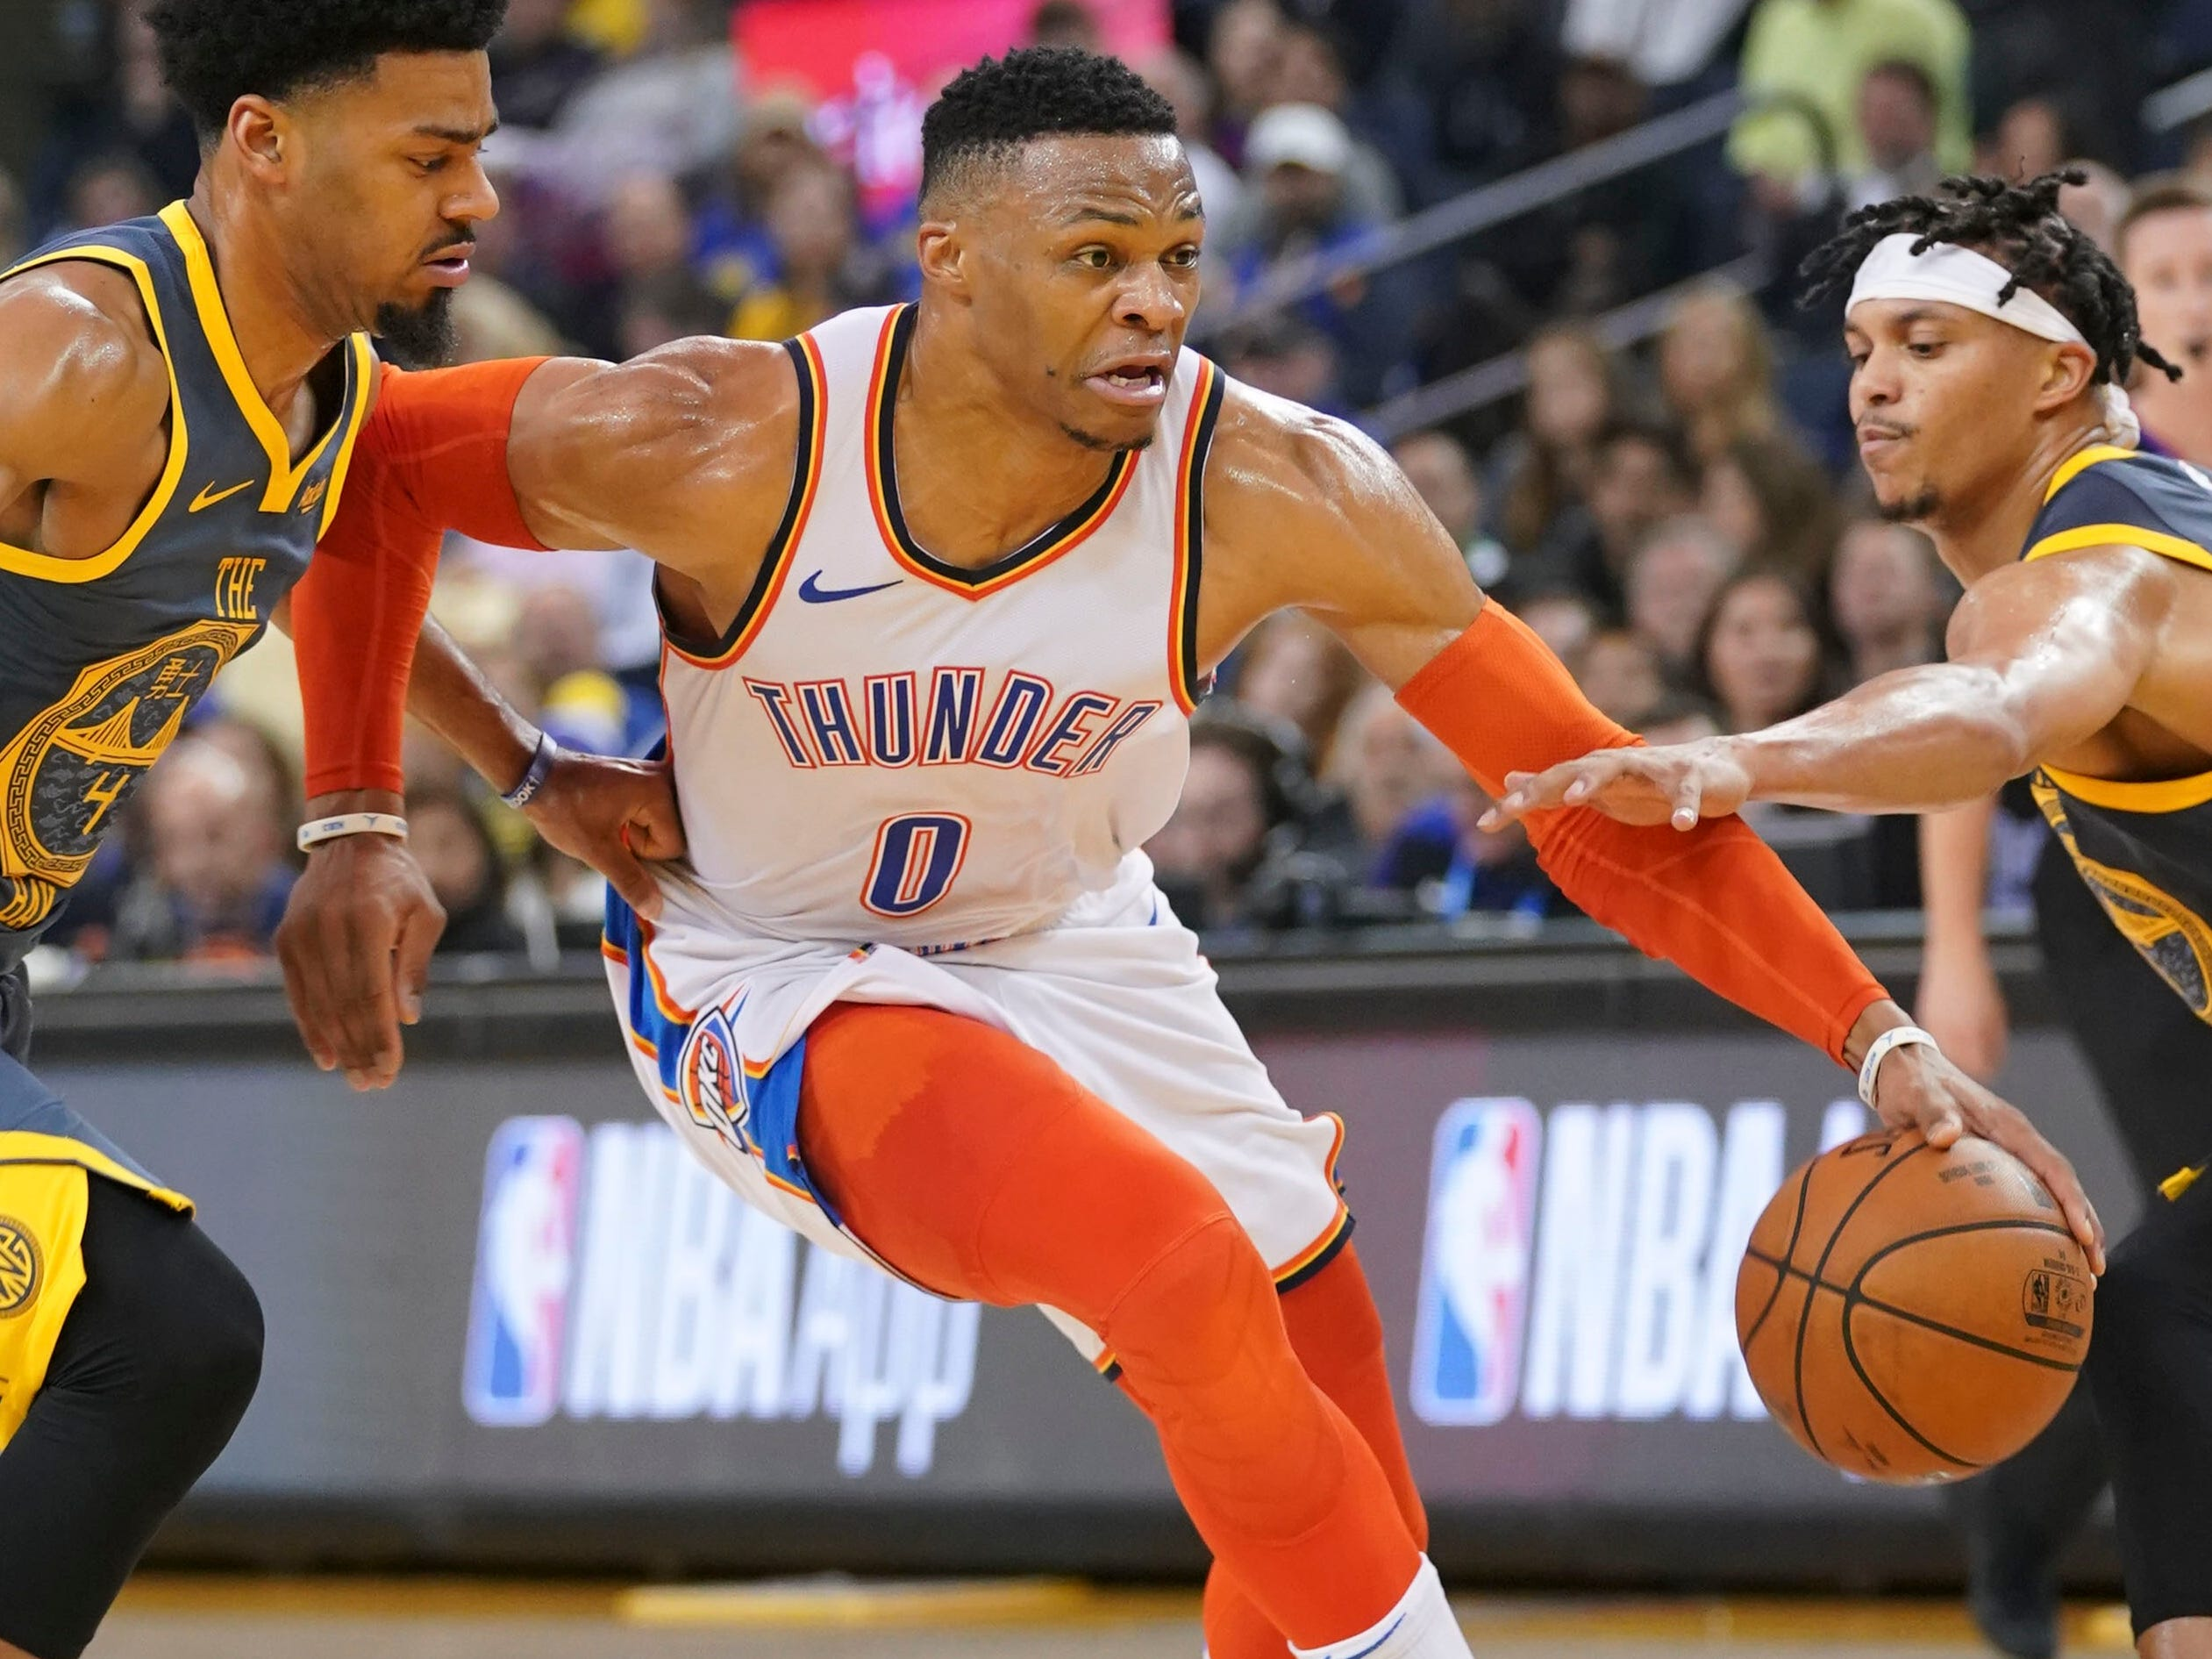 14. Russell Westbrook, Thunder (Nov. 21): 11 points, 13 assists, 11 rebounds in 123-95 win over Warriors.